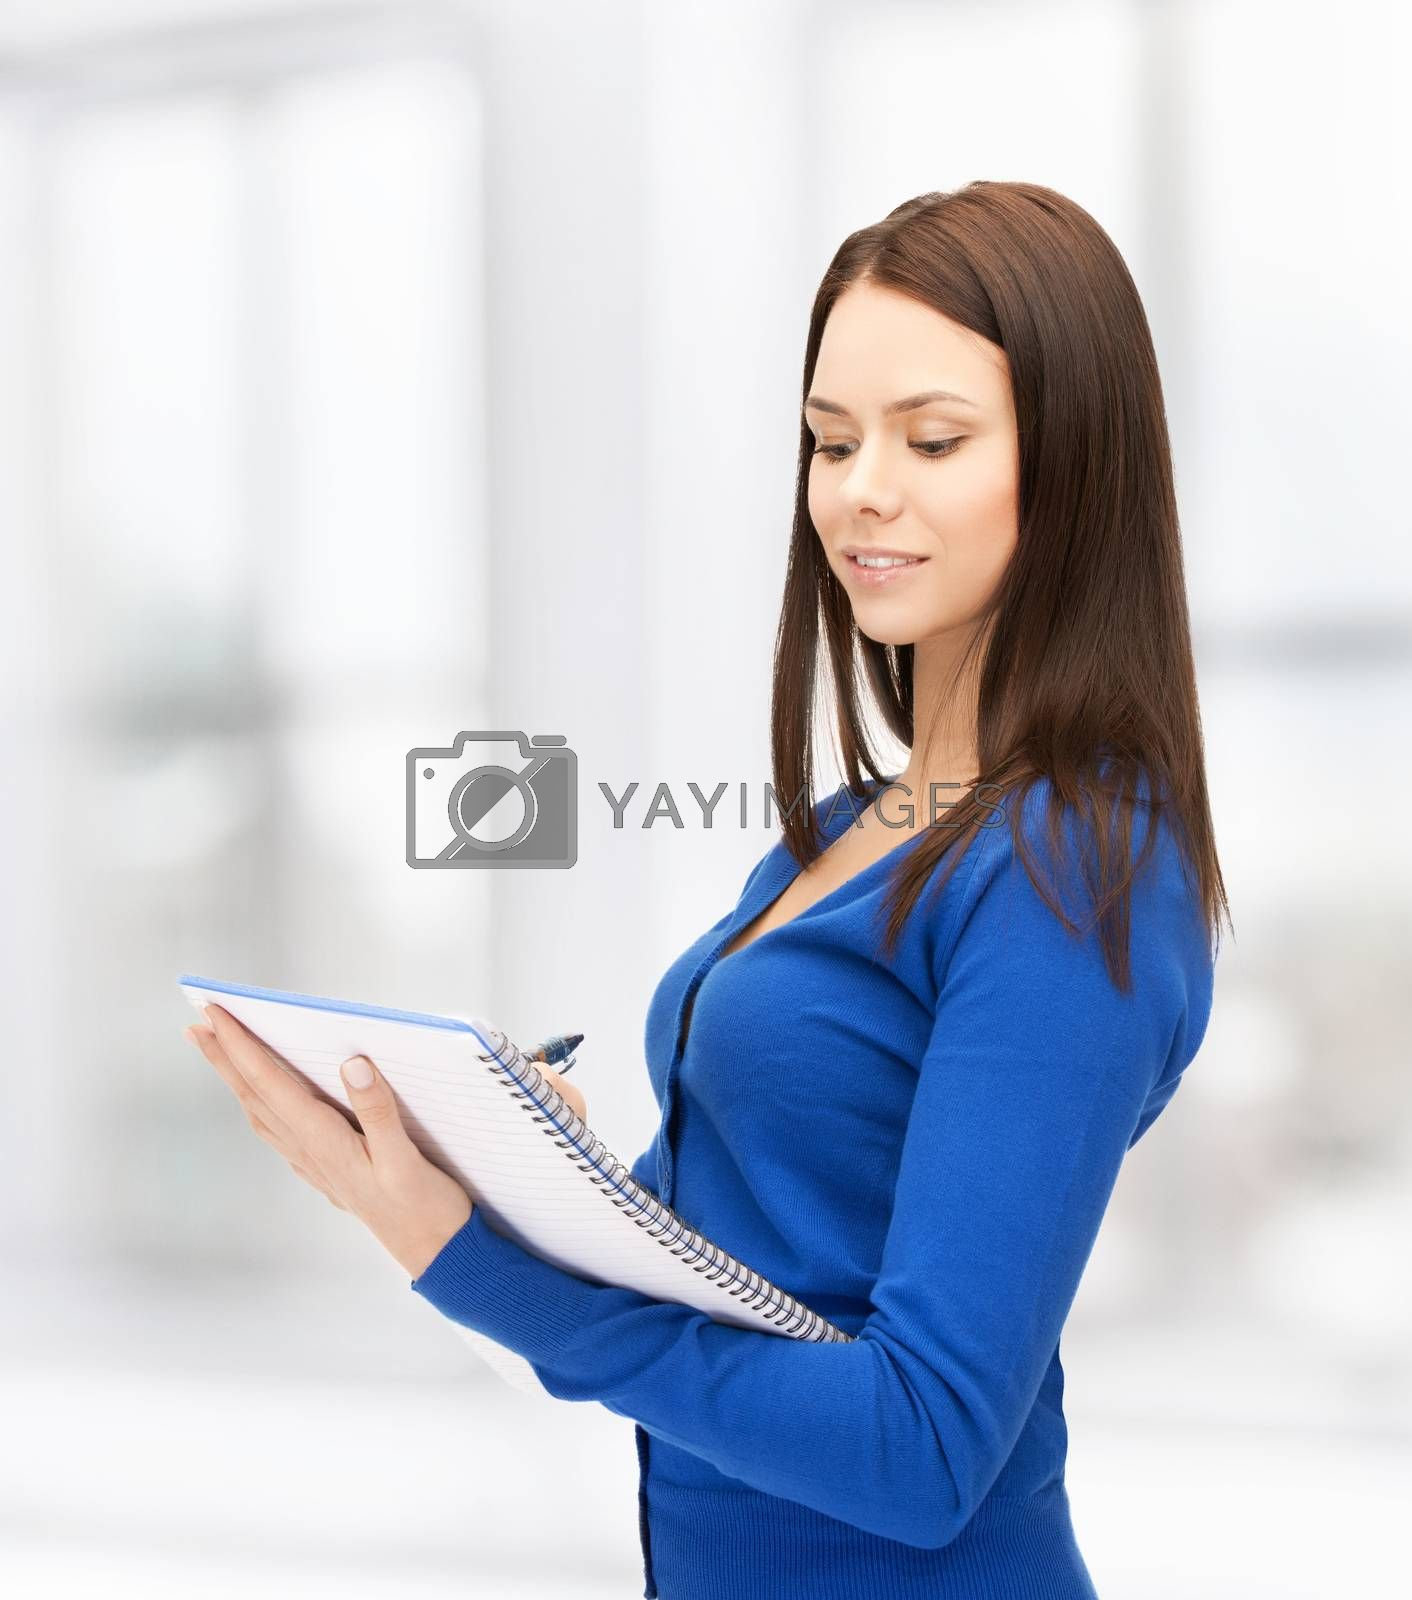 smiling young businesswoman with notebook by dolgachov